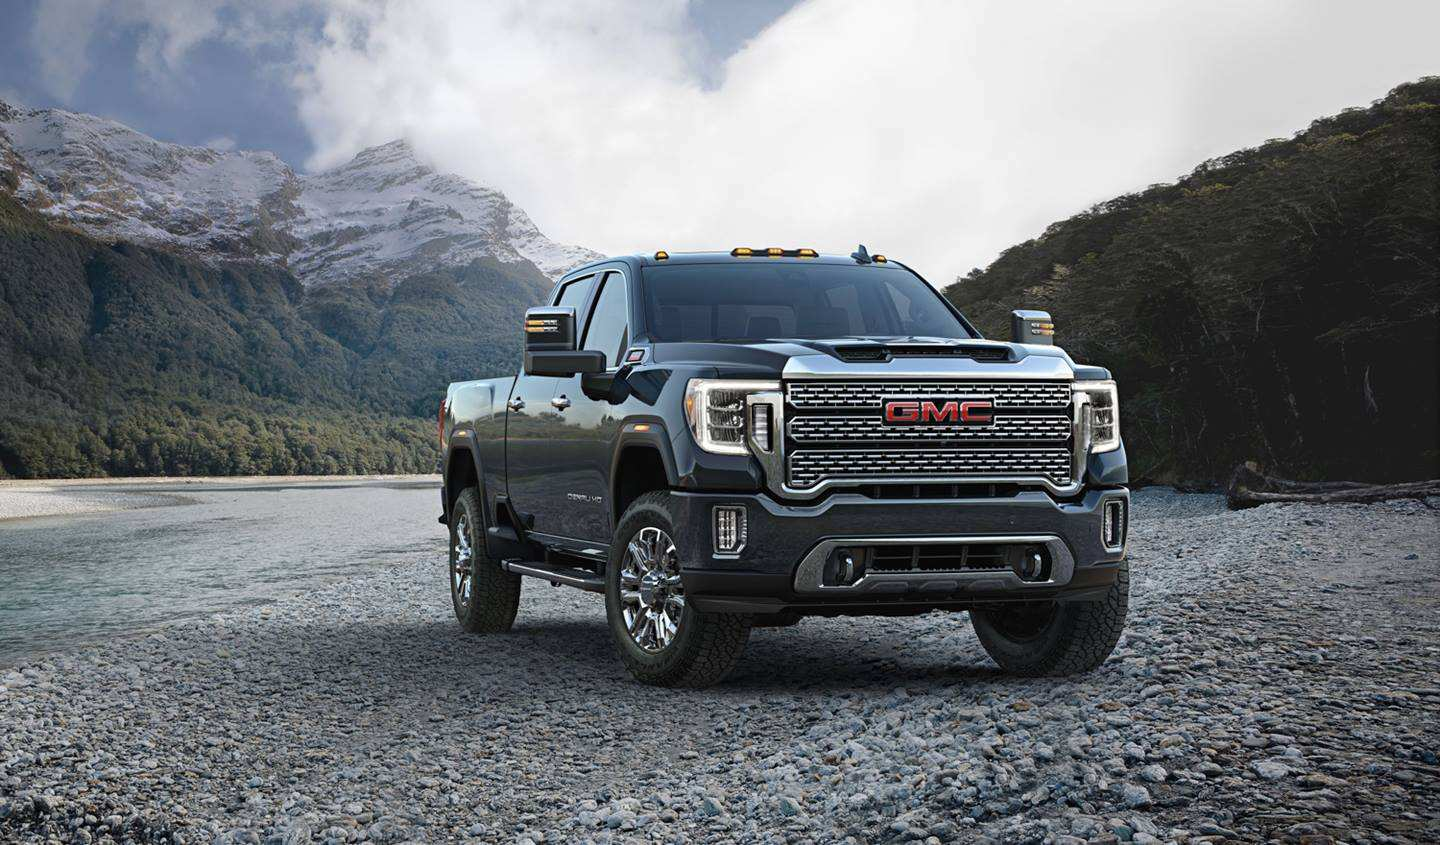 56 All New 2020 Gmc Sierra 2500 Engine Options New Review by 2020 Gmc Sierra 2500 Engine Options